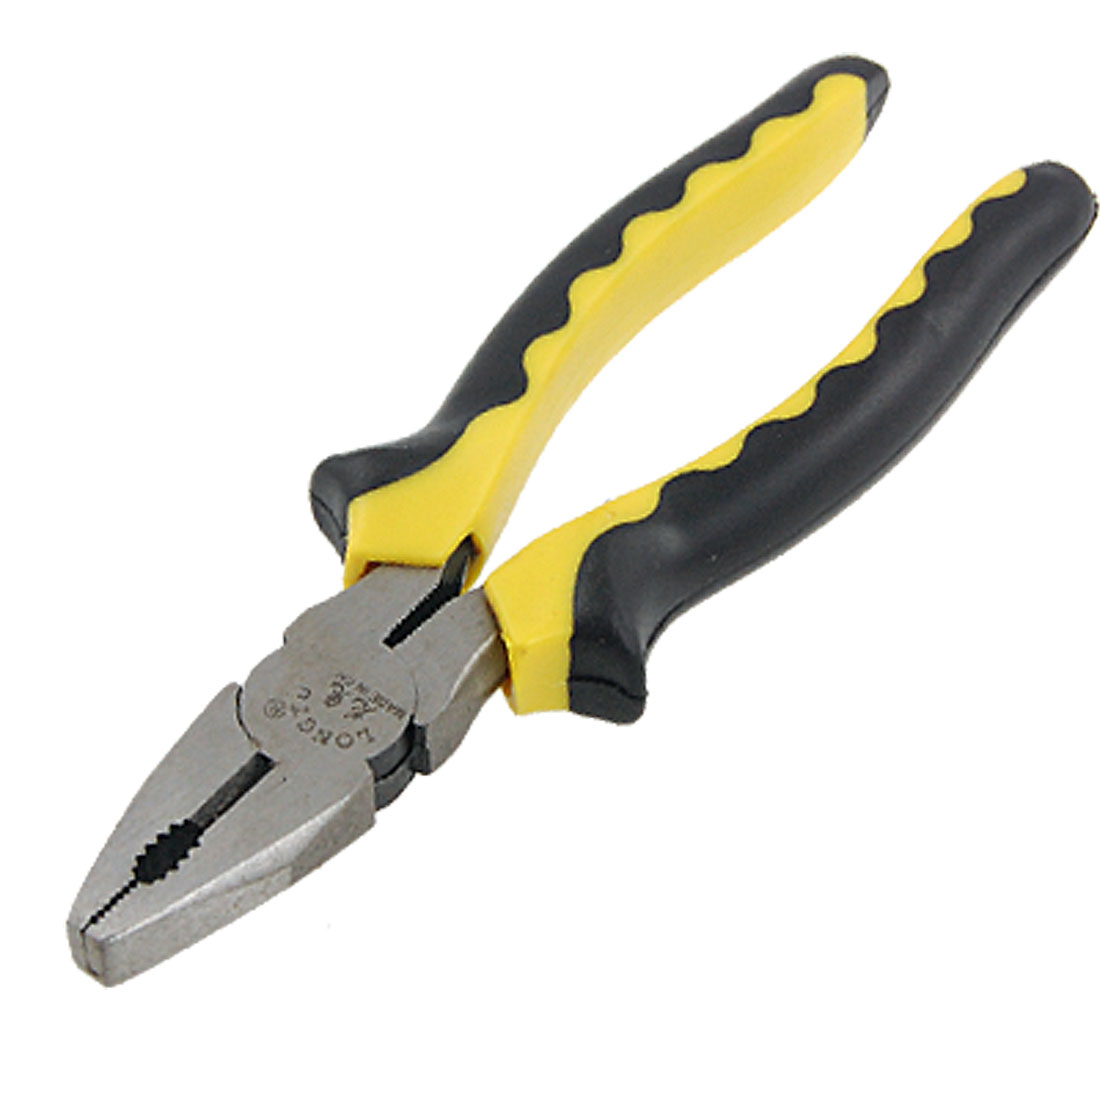 "Nonslip Yellow Black Handle 8"" Linesman Pliers Tool"